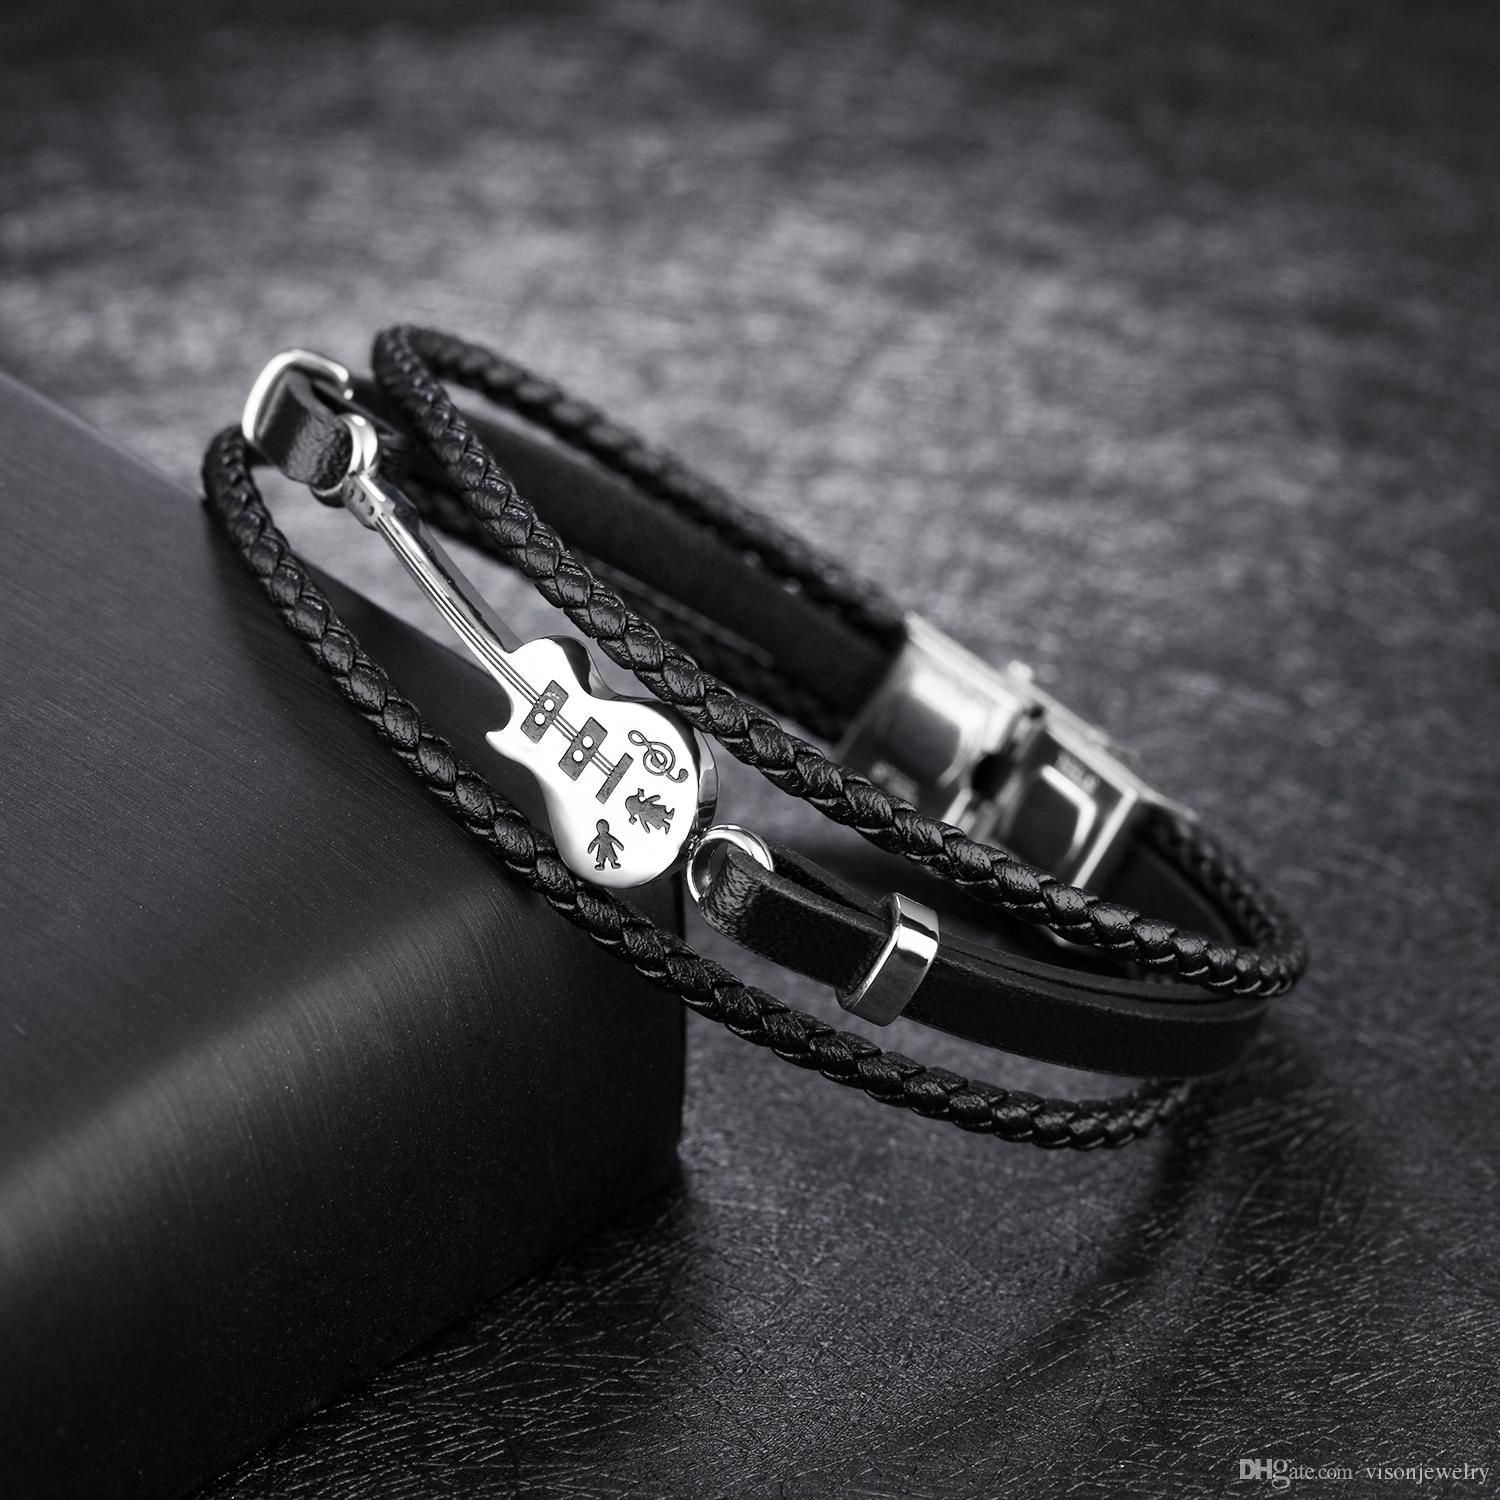 Rope Hand for Men Gothic Guitar Cuffs Wrap Leather Bracelets Jewelry Music Gifts Rocker for Him